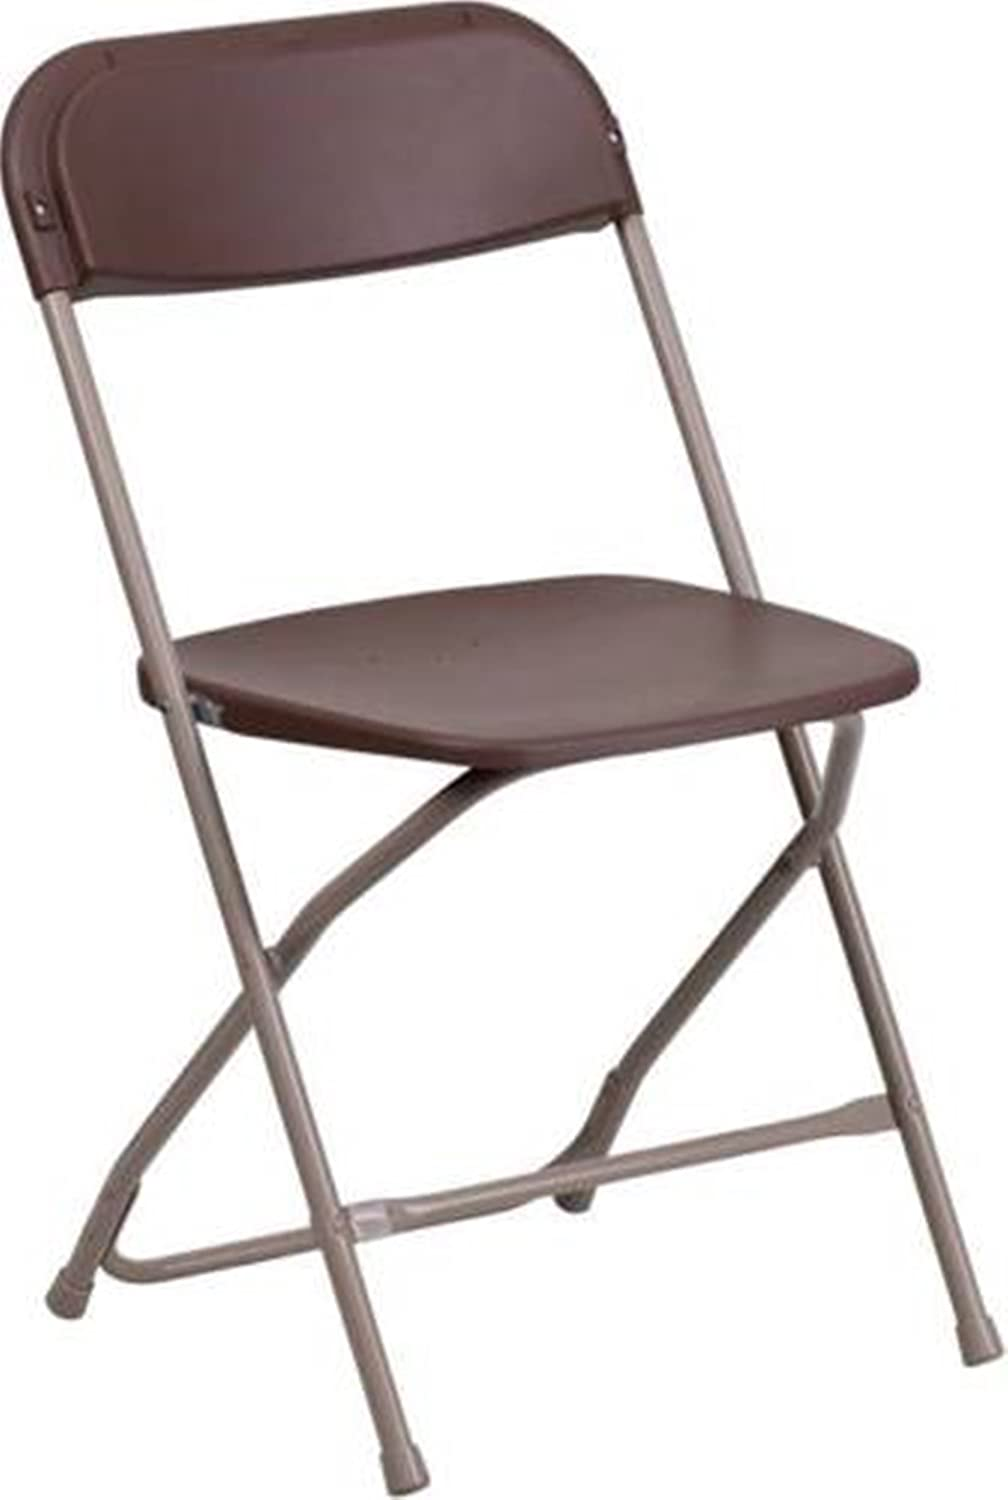 Marvelous Amazon Com New Sudden Comfort Folding Chair Capacity Pabps2019 Chair Design Images Pabps2019Com